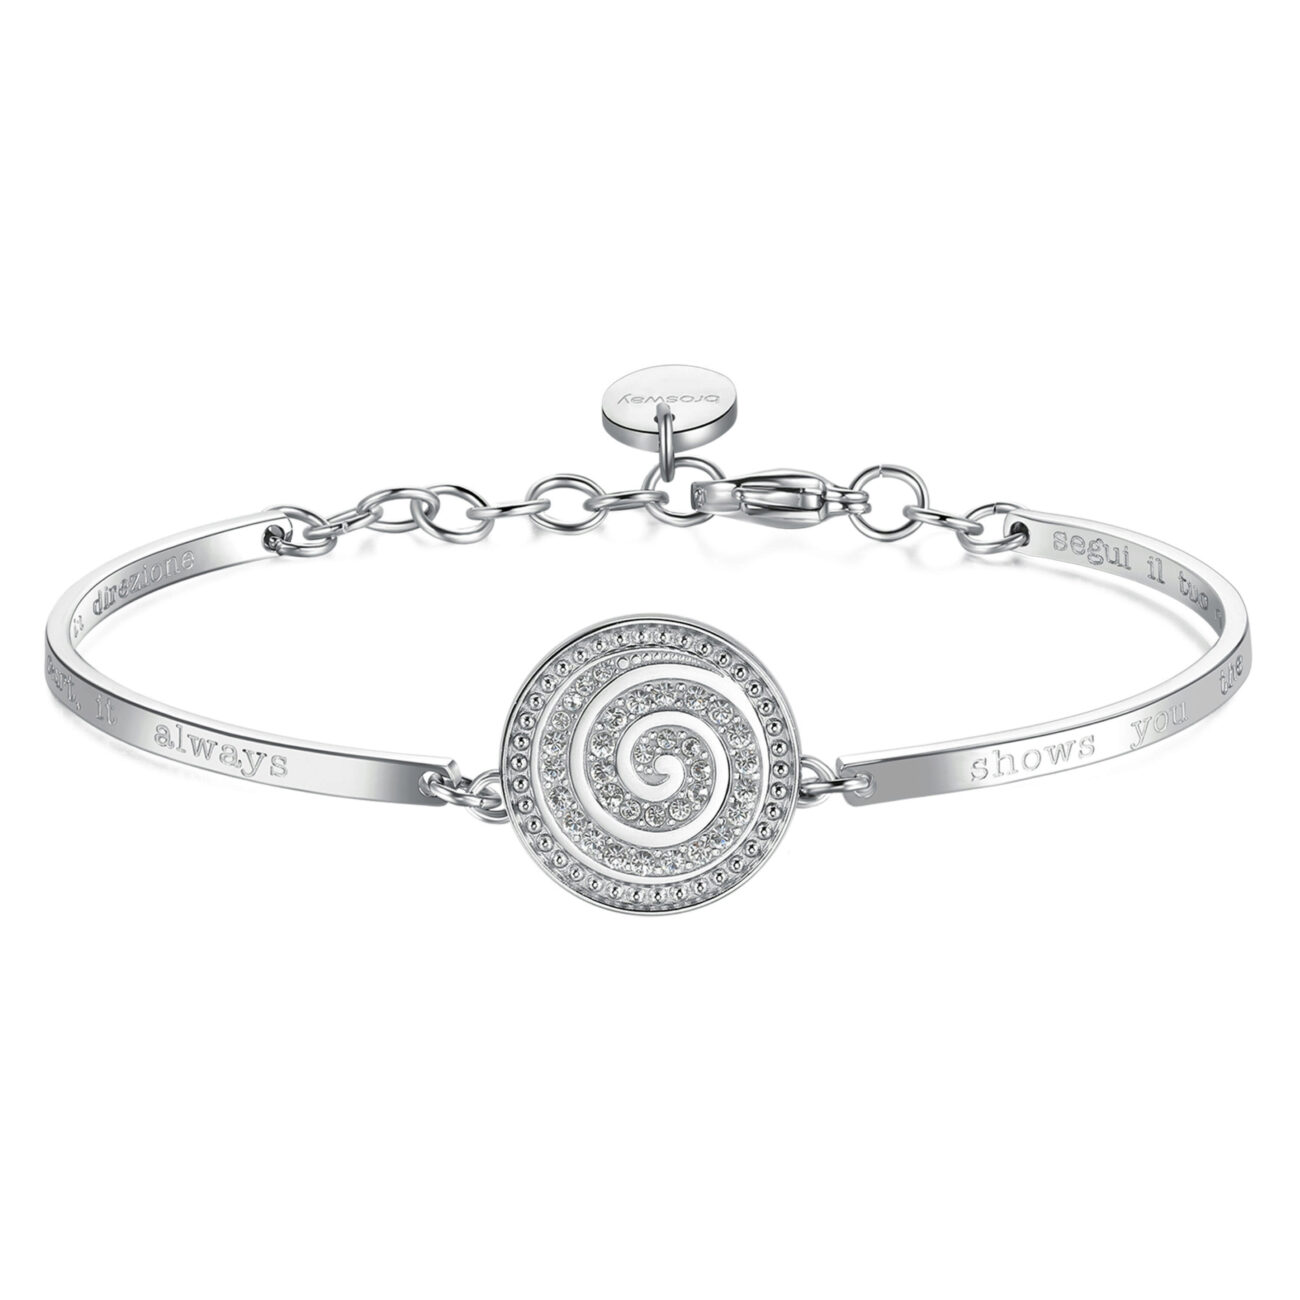 INFINITY SPIRAL: INFINITY, INSTINCT, AND HAPPINESS ENGRAVING: Follow your heart, it always shows you the right direction (front) – Segui il tuo cuore, sarà sempre lui a mostrarti la giusta direzione (back) Listen to your heart and let it take you in the right direction. You live every moment of your life to the full and only you know the true path to your happiness.316L stainless steel bracelet and Swarovski® crystal..